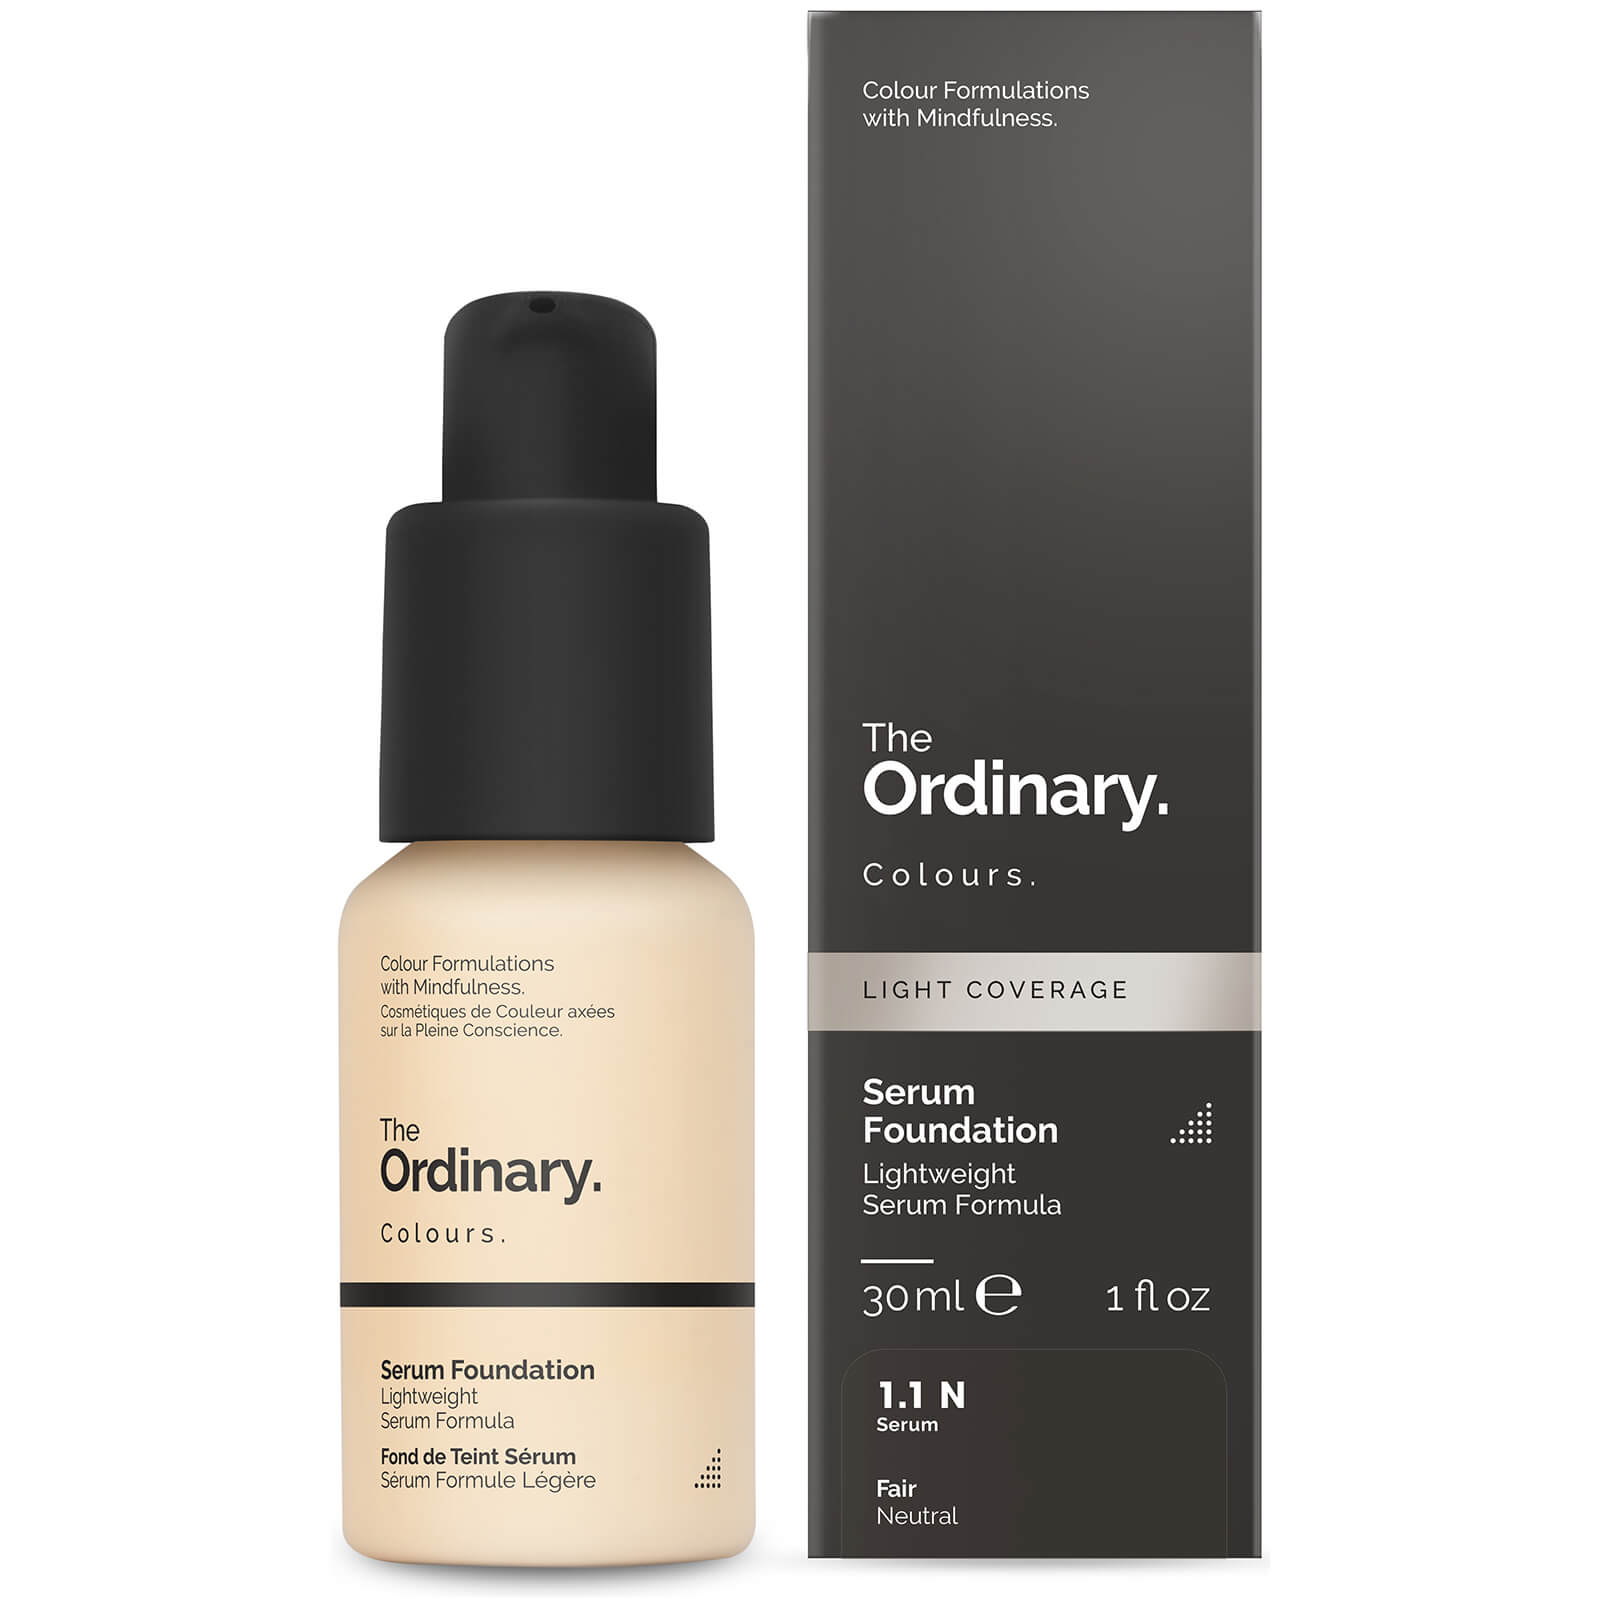 The Ordinary Serum Foundation with SPF 15 by The Ordinary Colours 30ml (Various Shades) - 1.1P